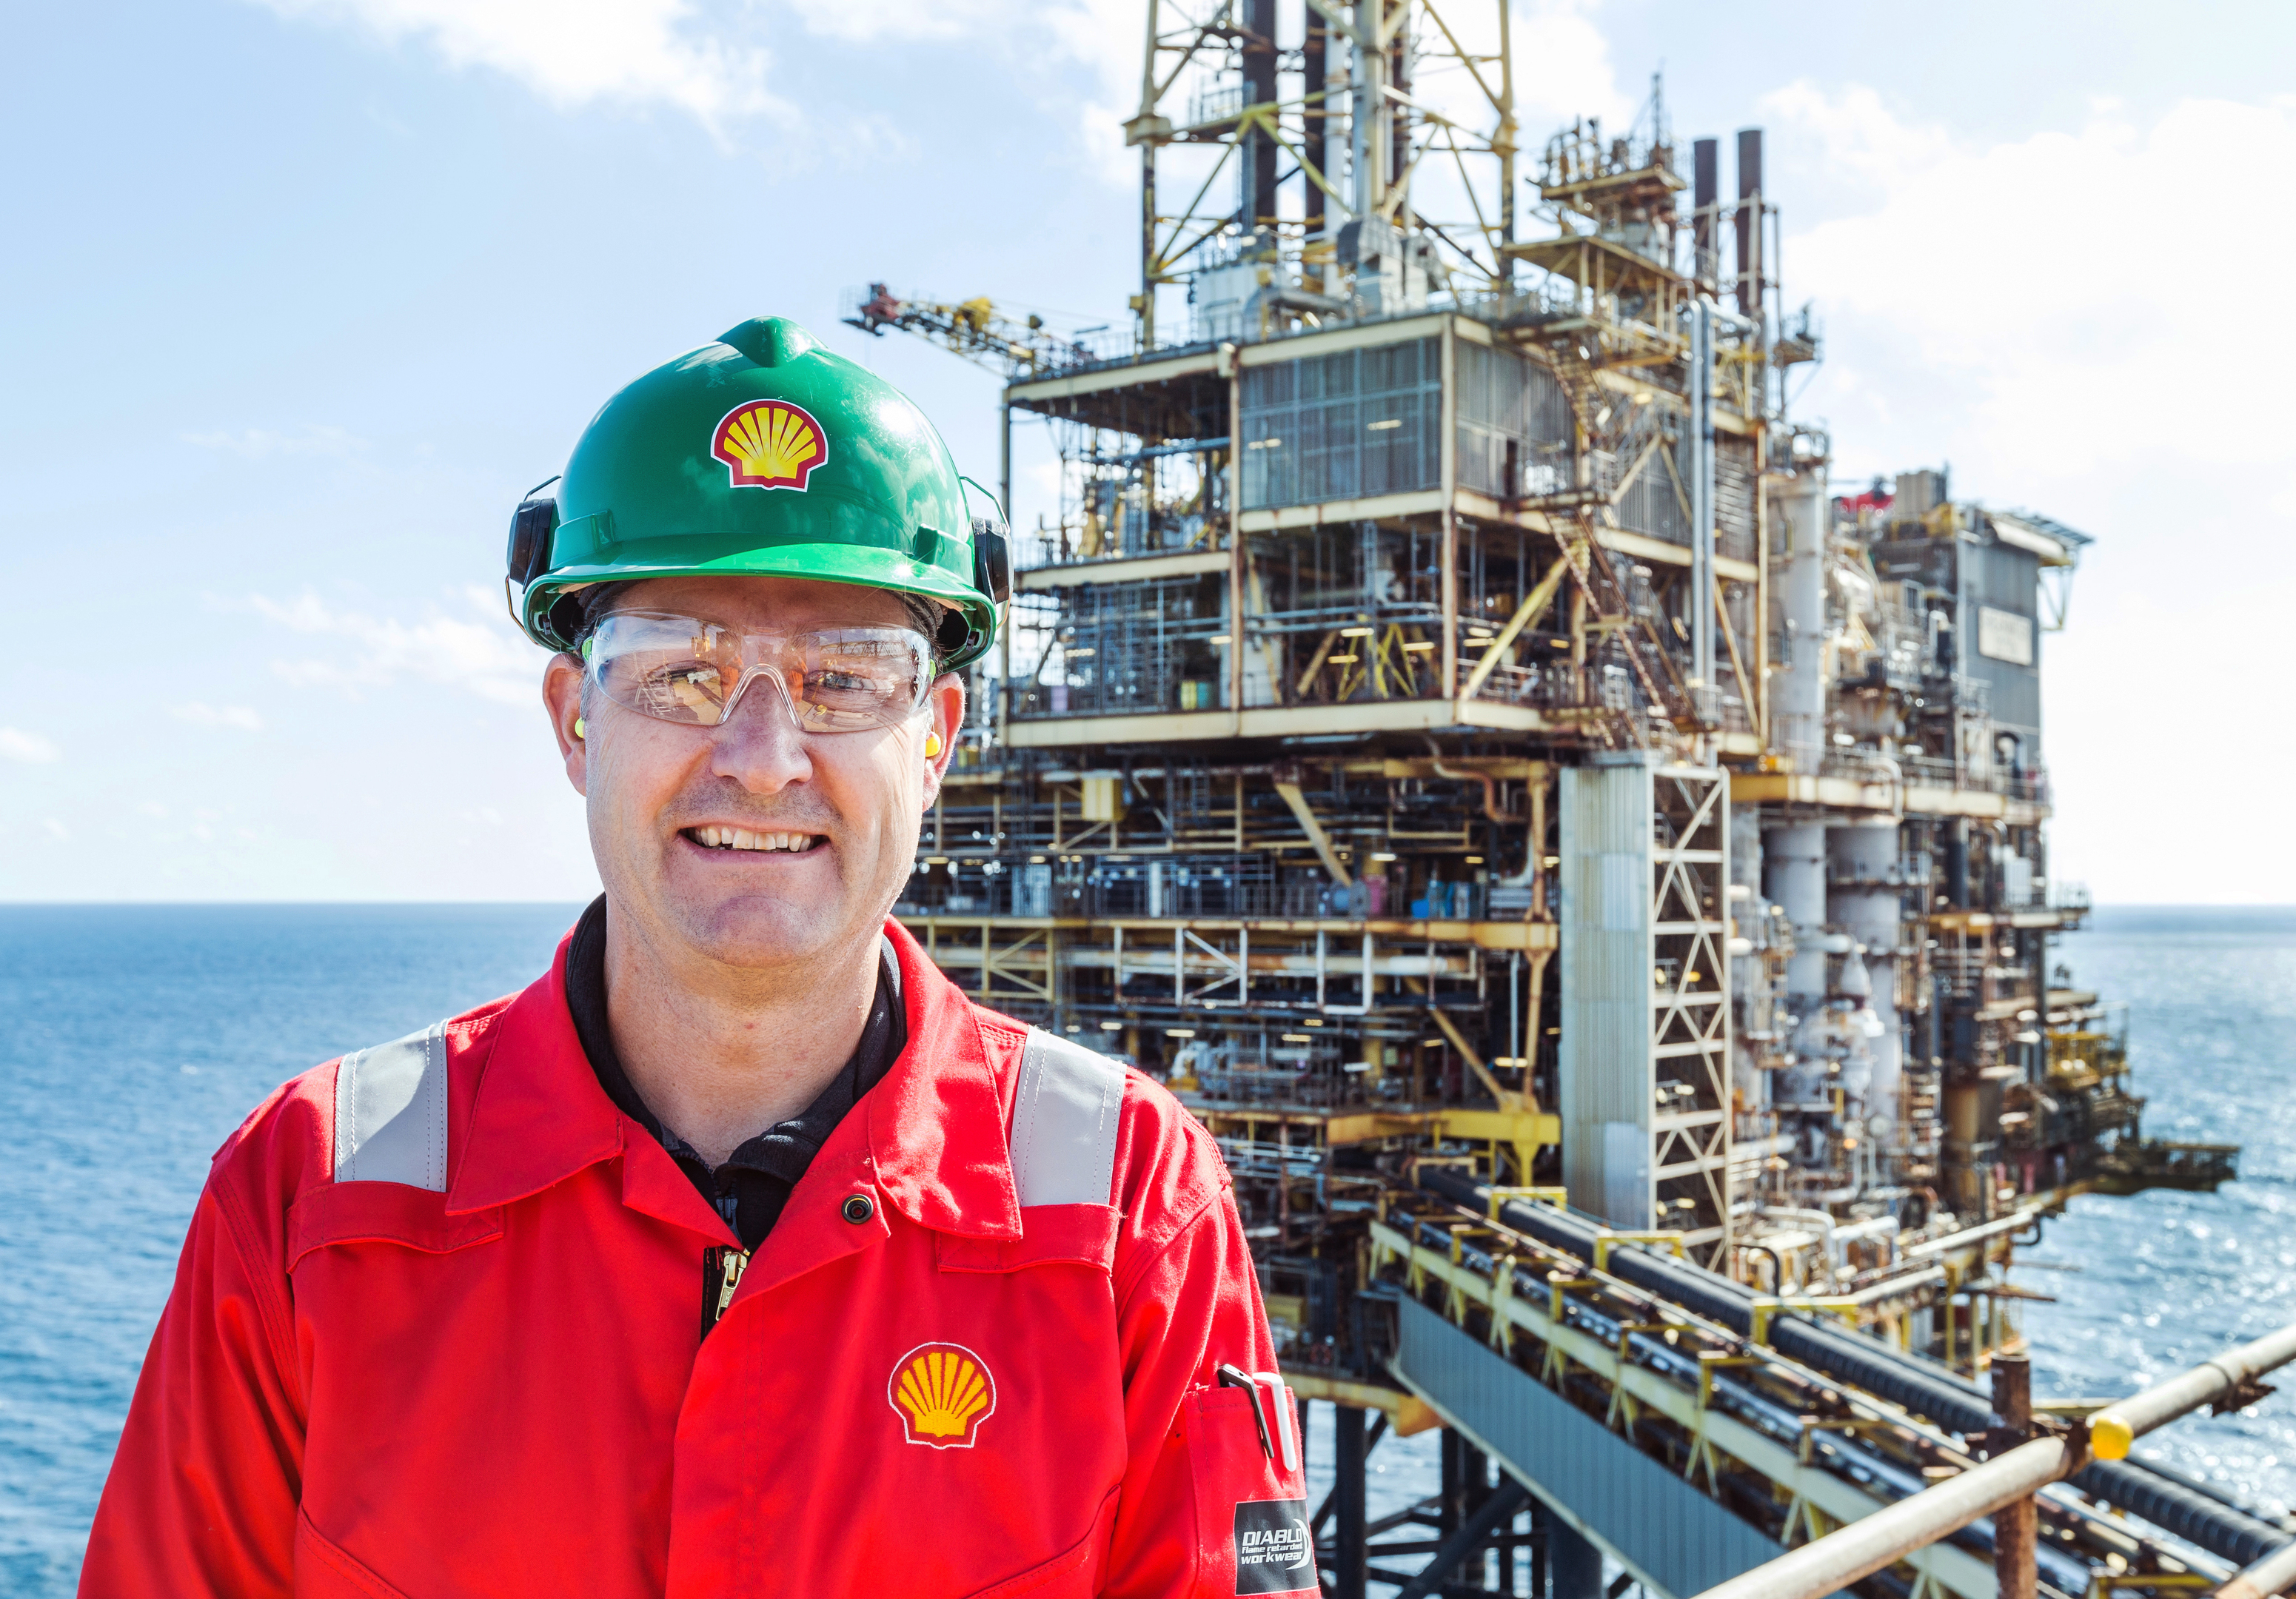 Shell North Sea boss Steve Phimister on Shearwater